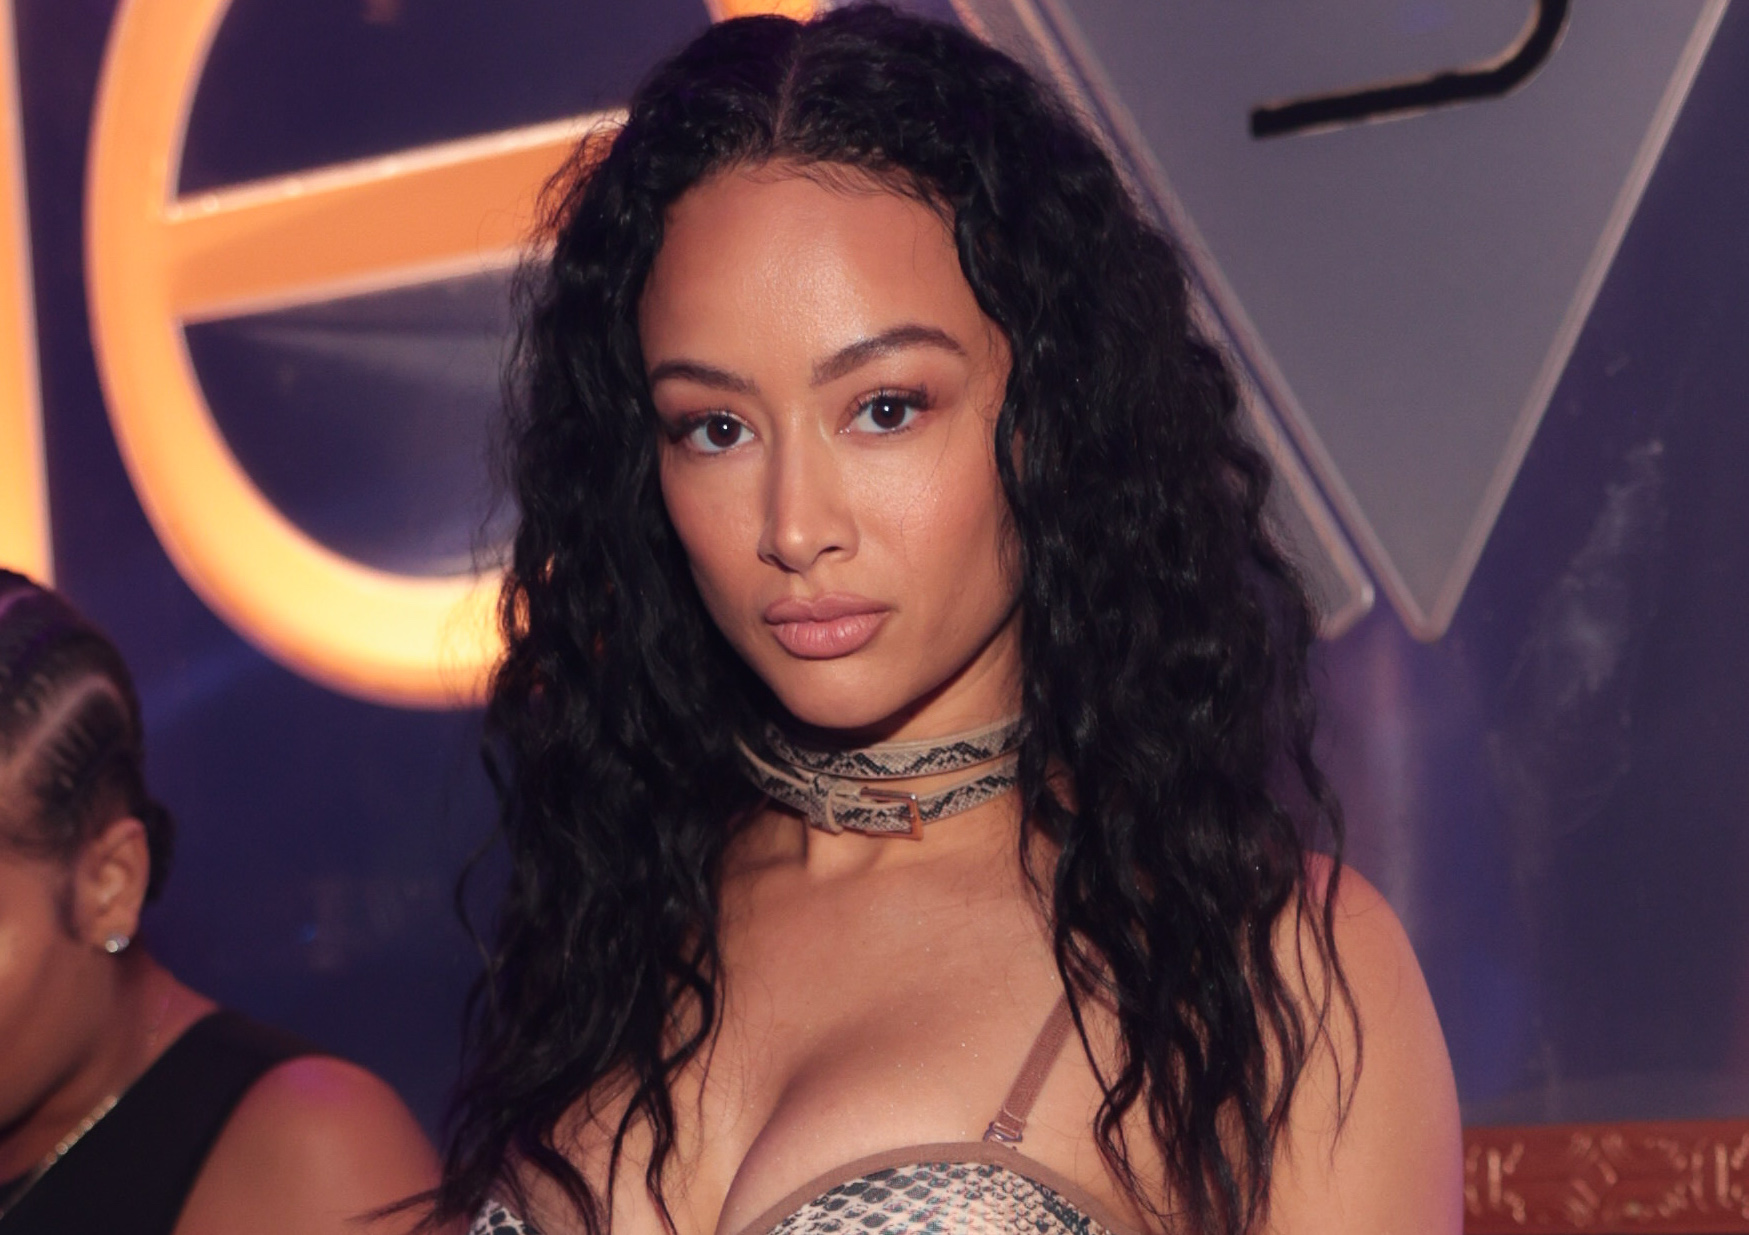 Draya Michele Slays In Snakeskin While Partying With Meek Mill & Roddy Ricch